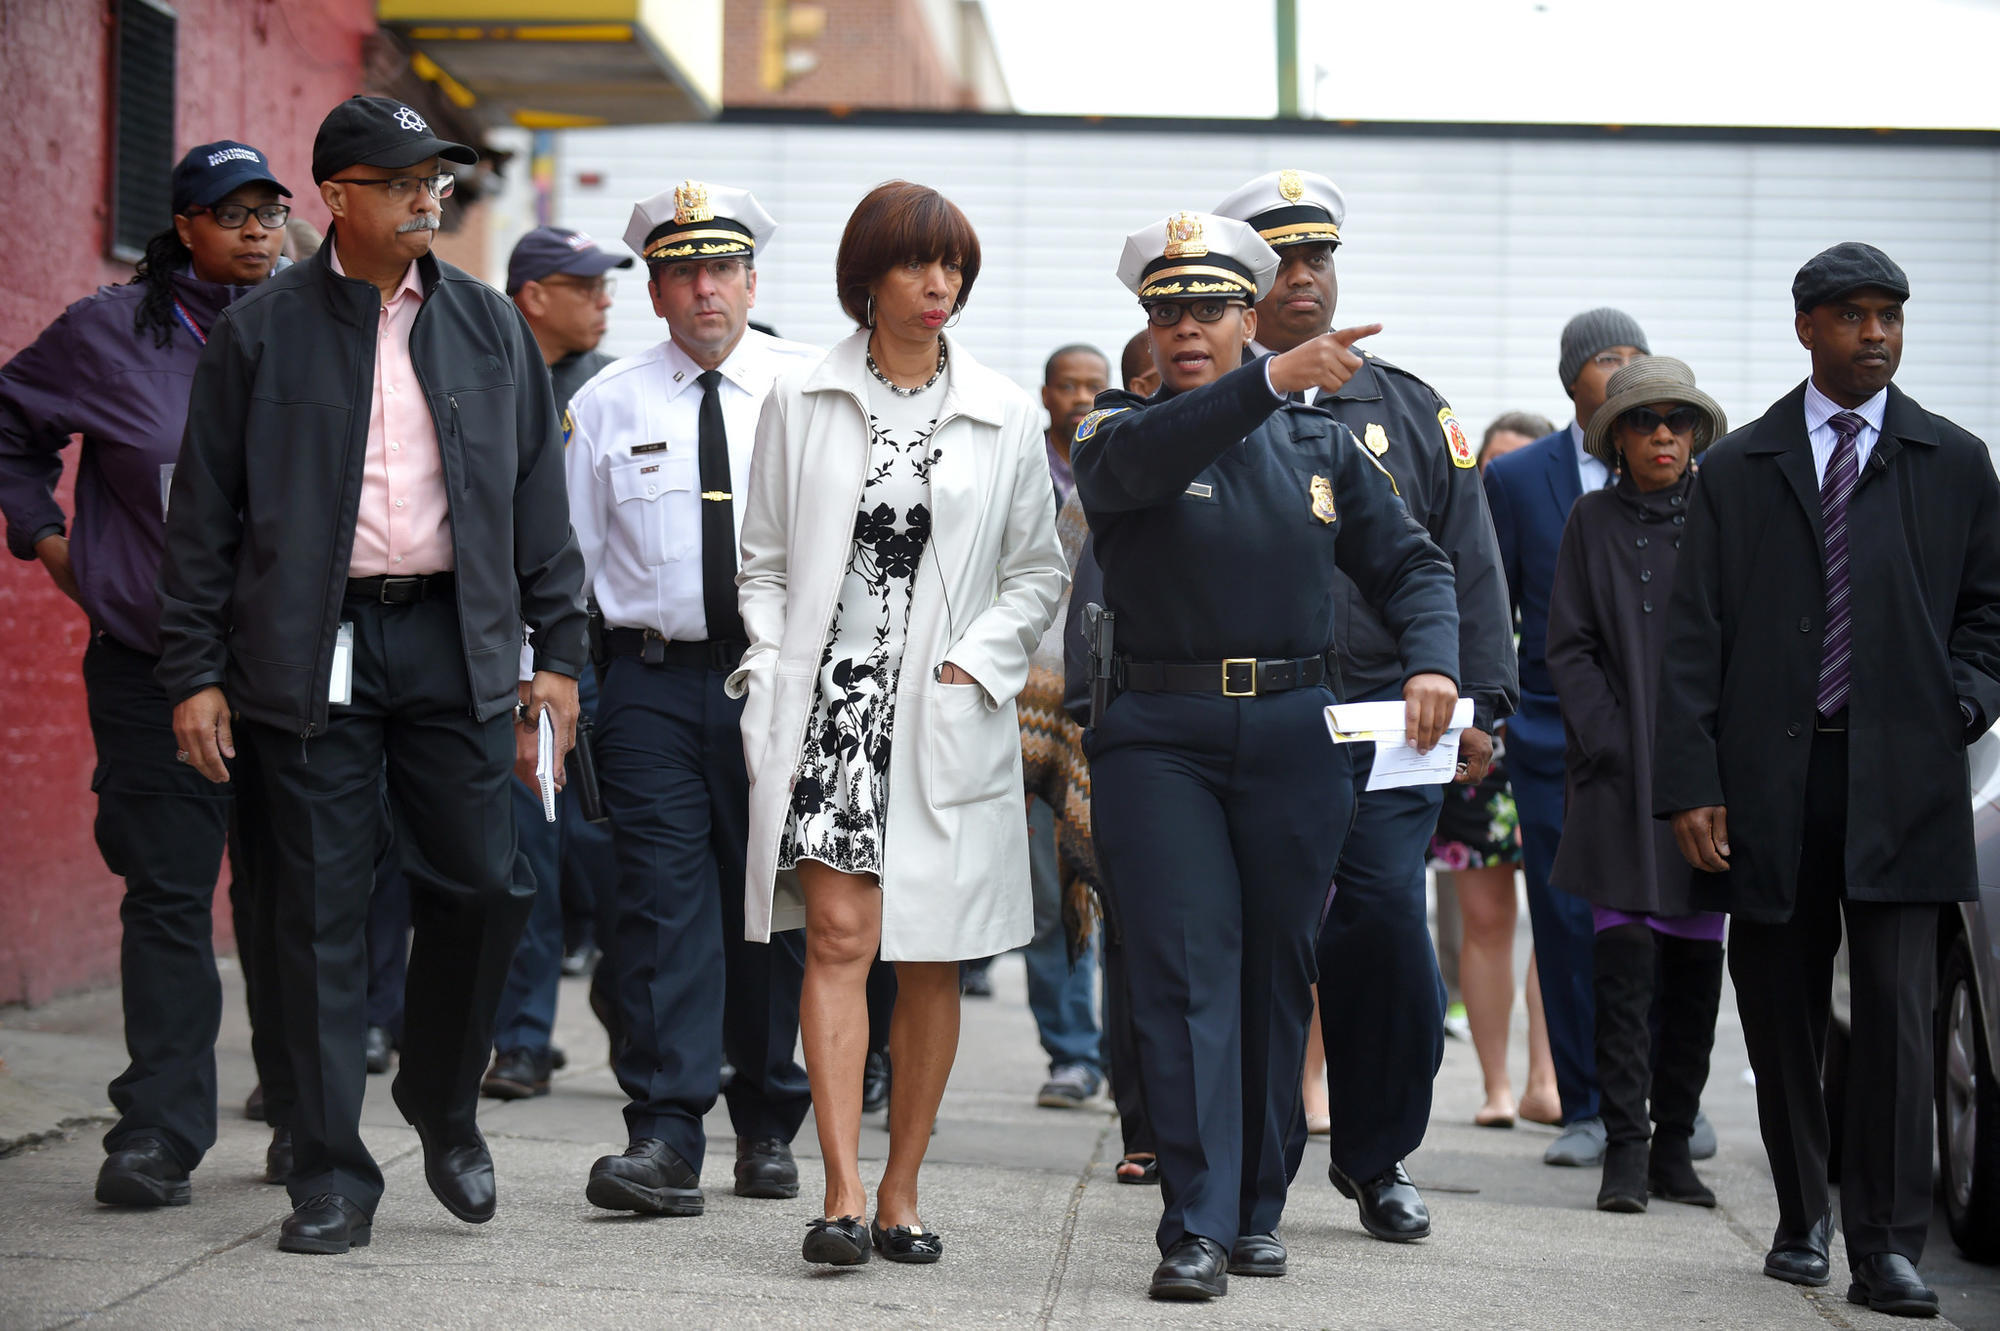 As Violence Spikes Mayor Catherine Pugh Hits The Streets